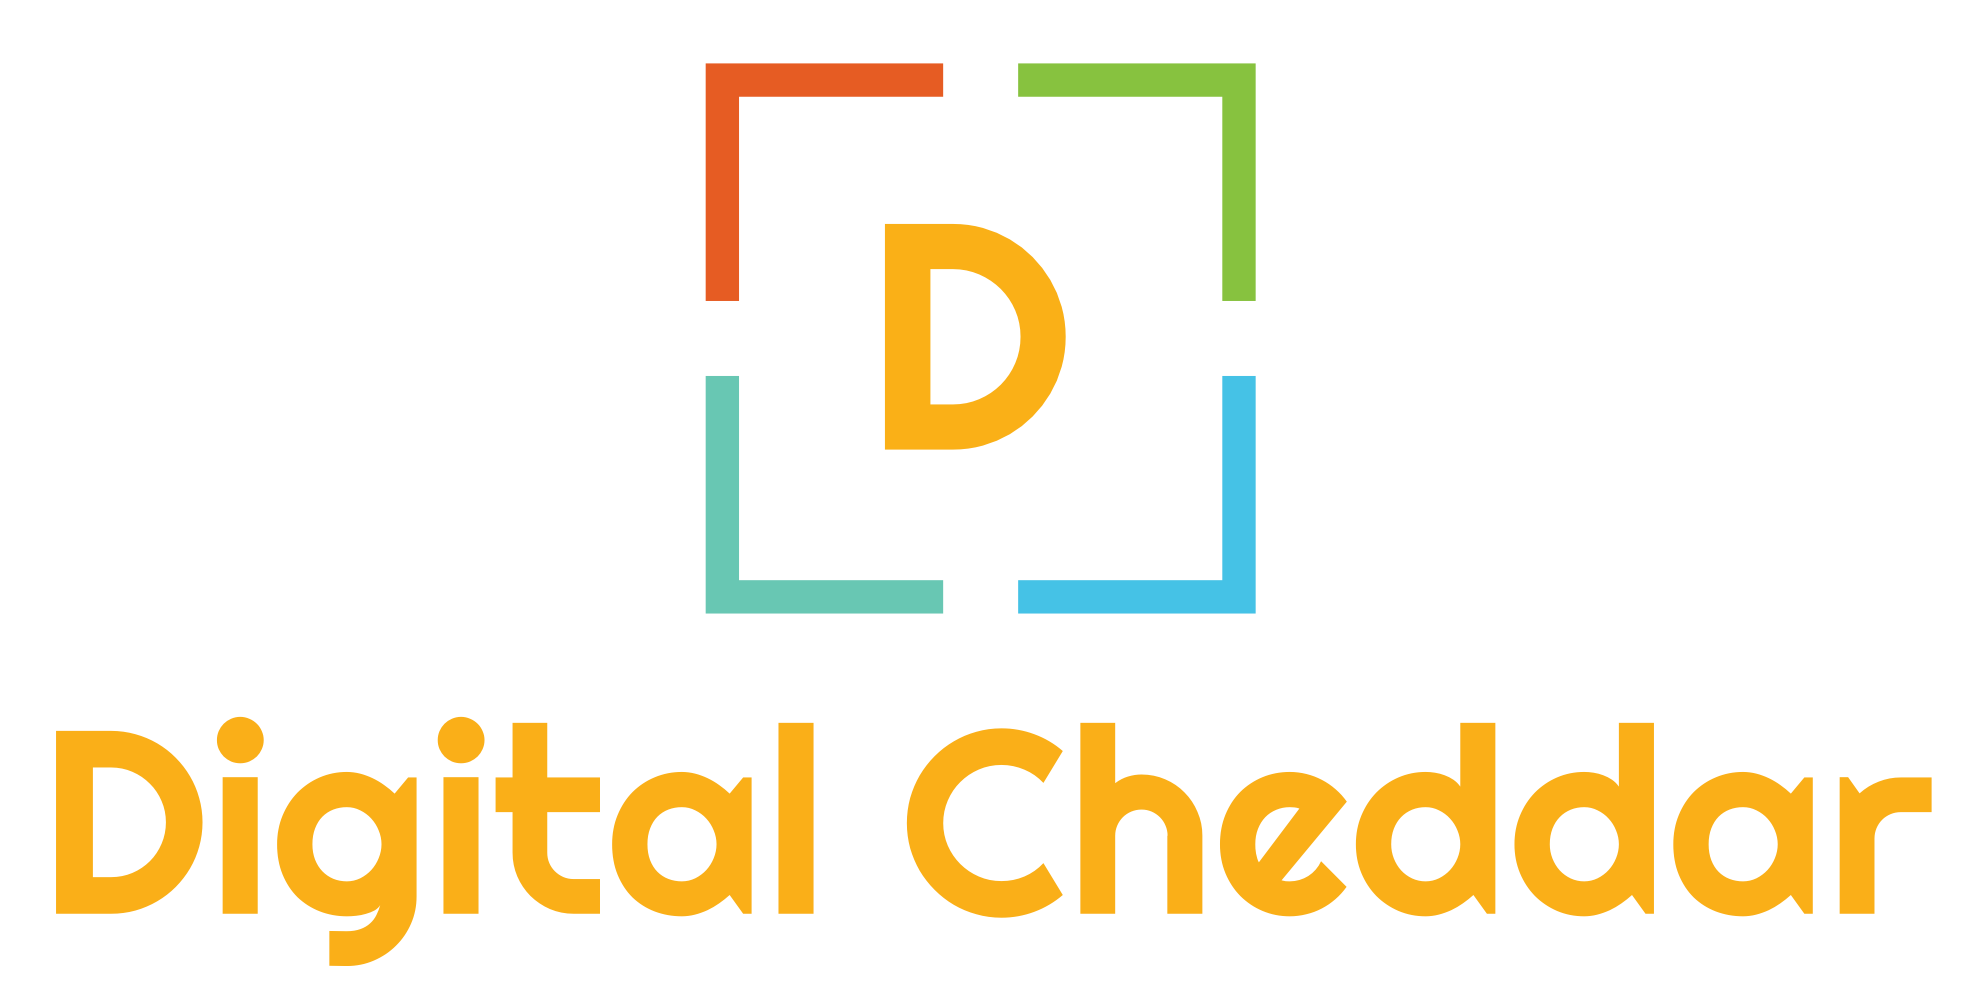 Digital Cheddar – Digital Marketing Experts